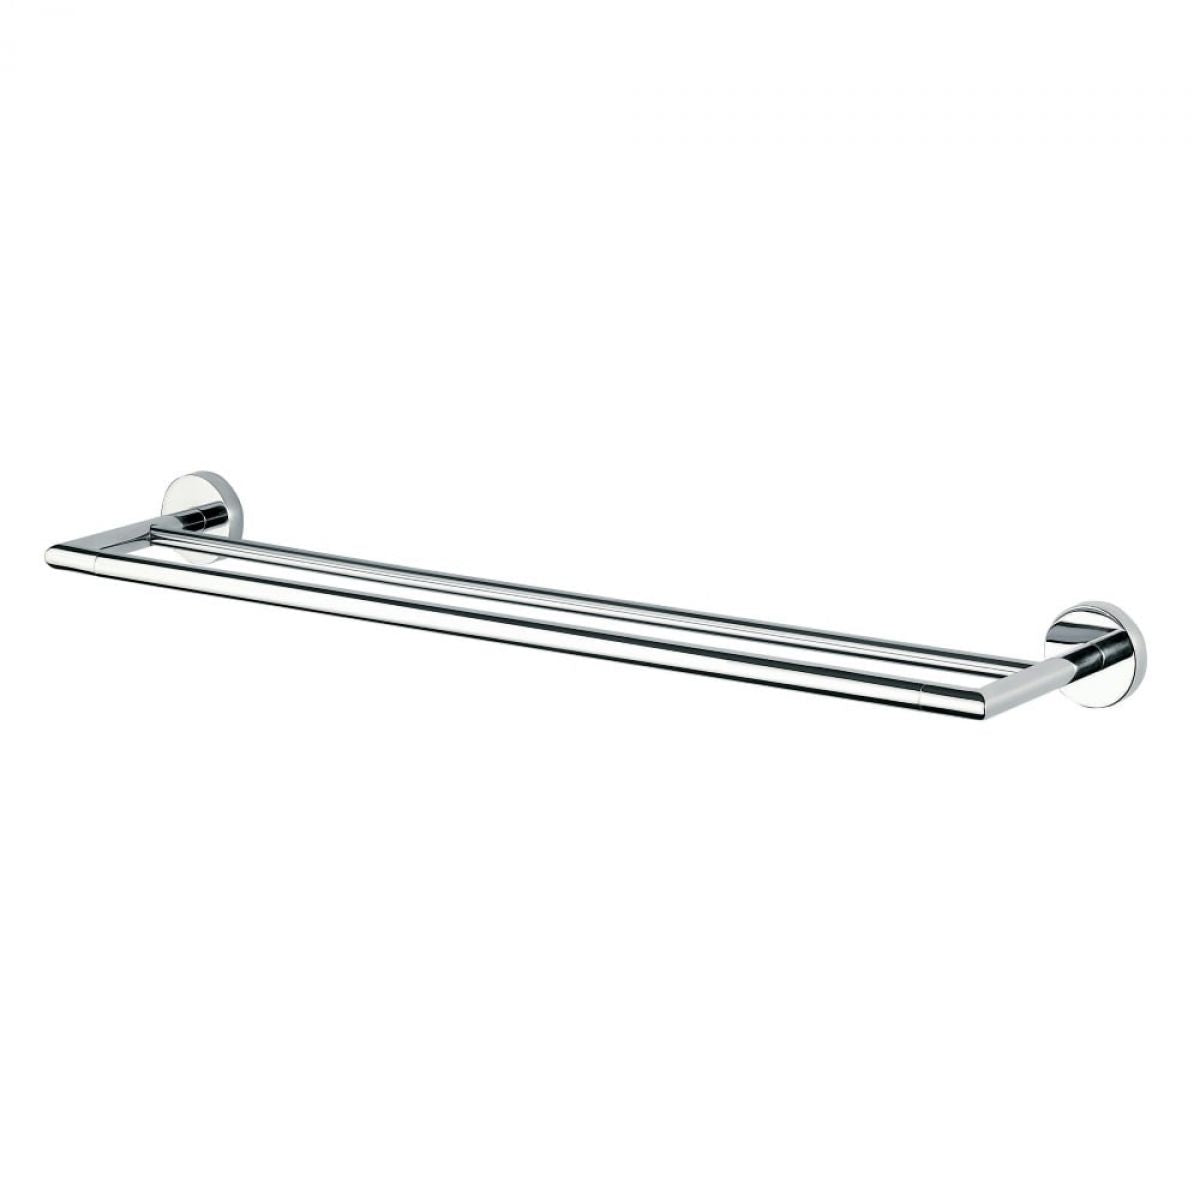 Forum Double Towel Rail - blueskybathrooms